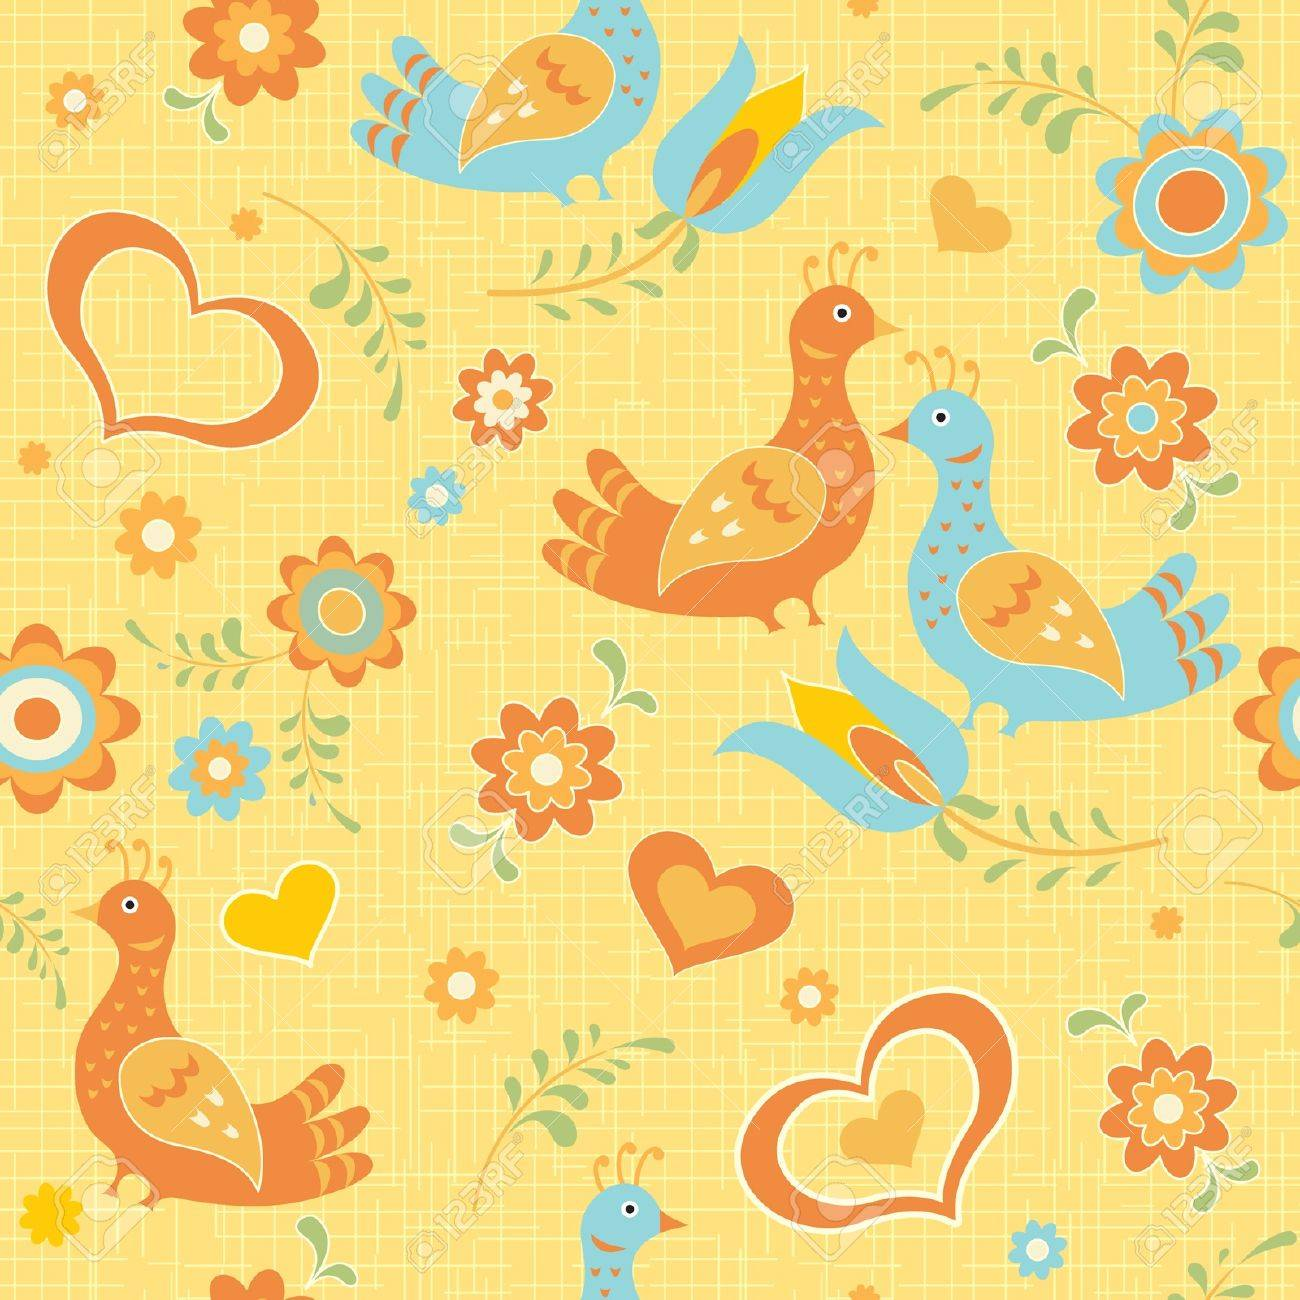 Colorful seamless wallpaper birds, flowers and hearts folk style Stock Vector - 12375162